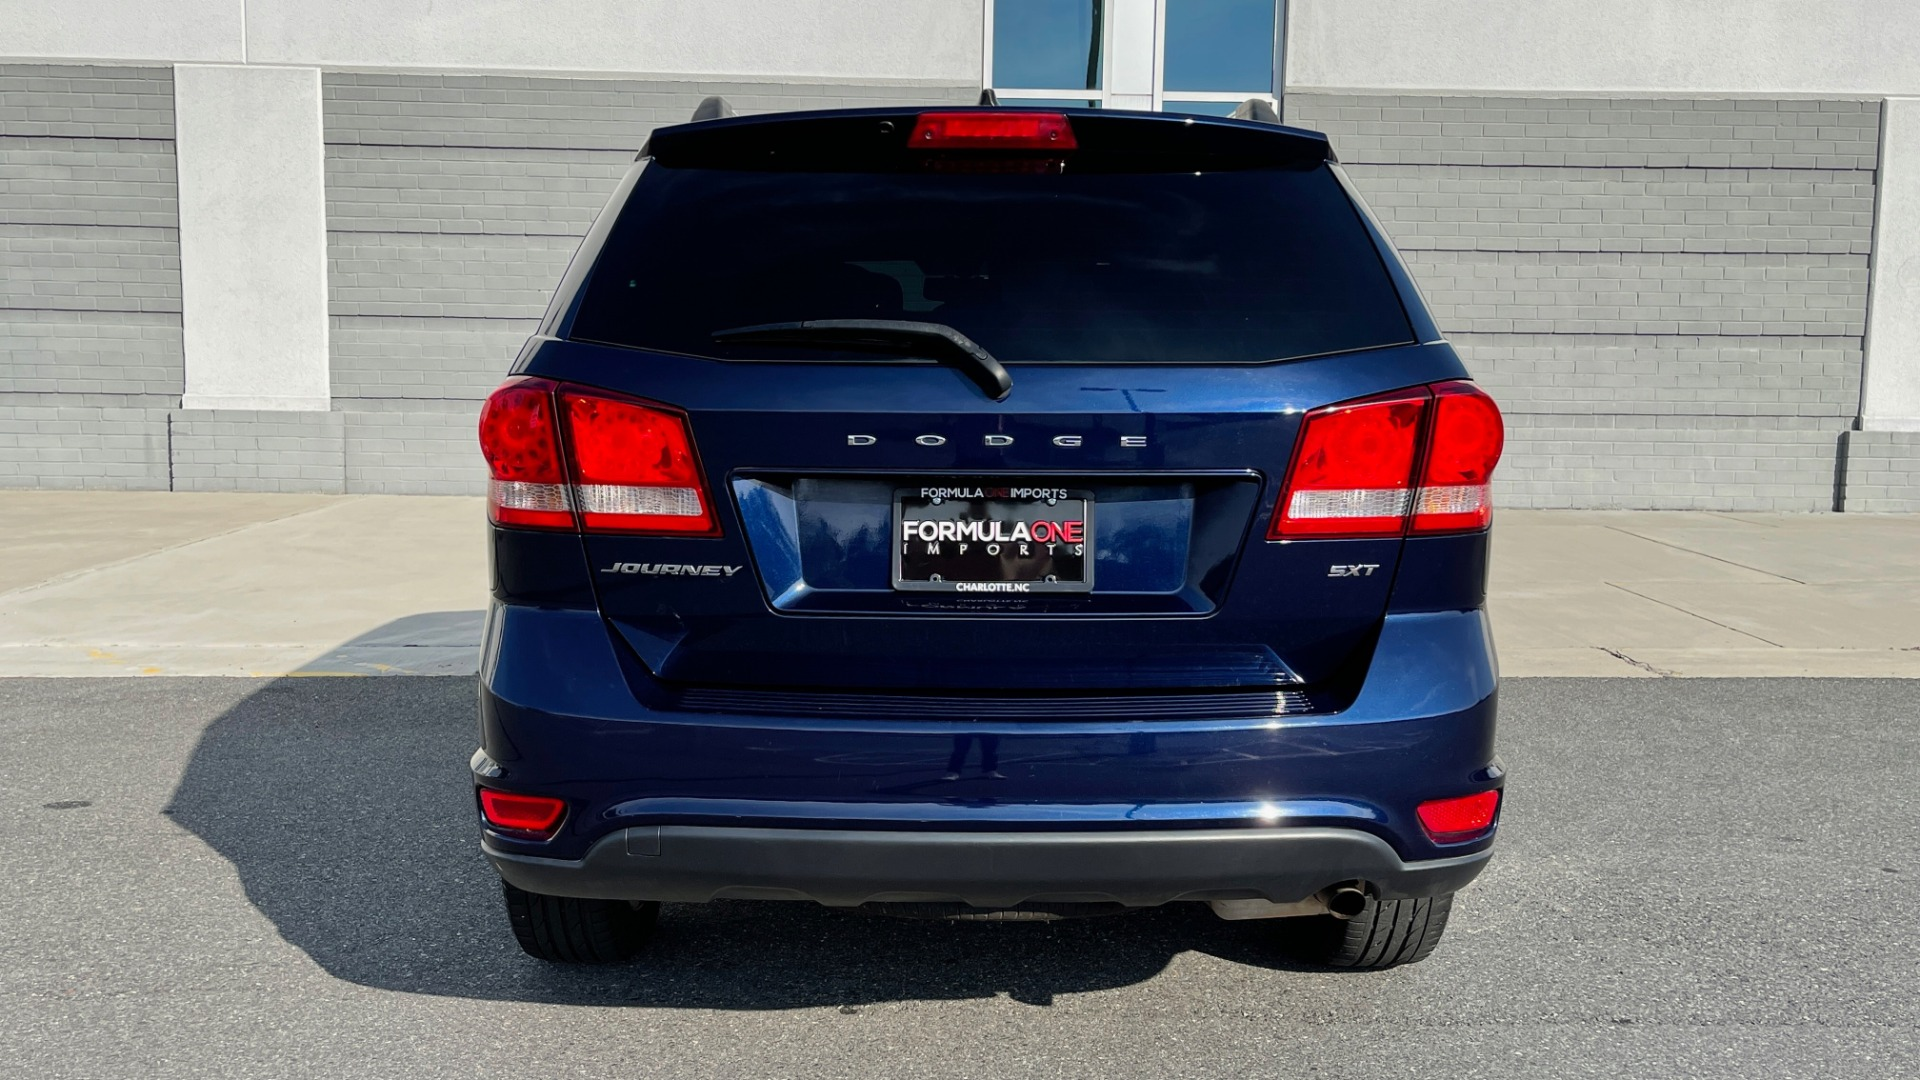 Used 2017 Dodge JOURNEY SXT PREMIUM / 2.4L / 4-SPD AUTO / KEYLESS-GO / 3-ROW / 19IN WHEELS for sale $15,995 at Formula Imports in Charlotte NC 28227 20